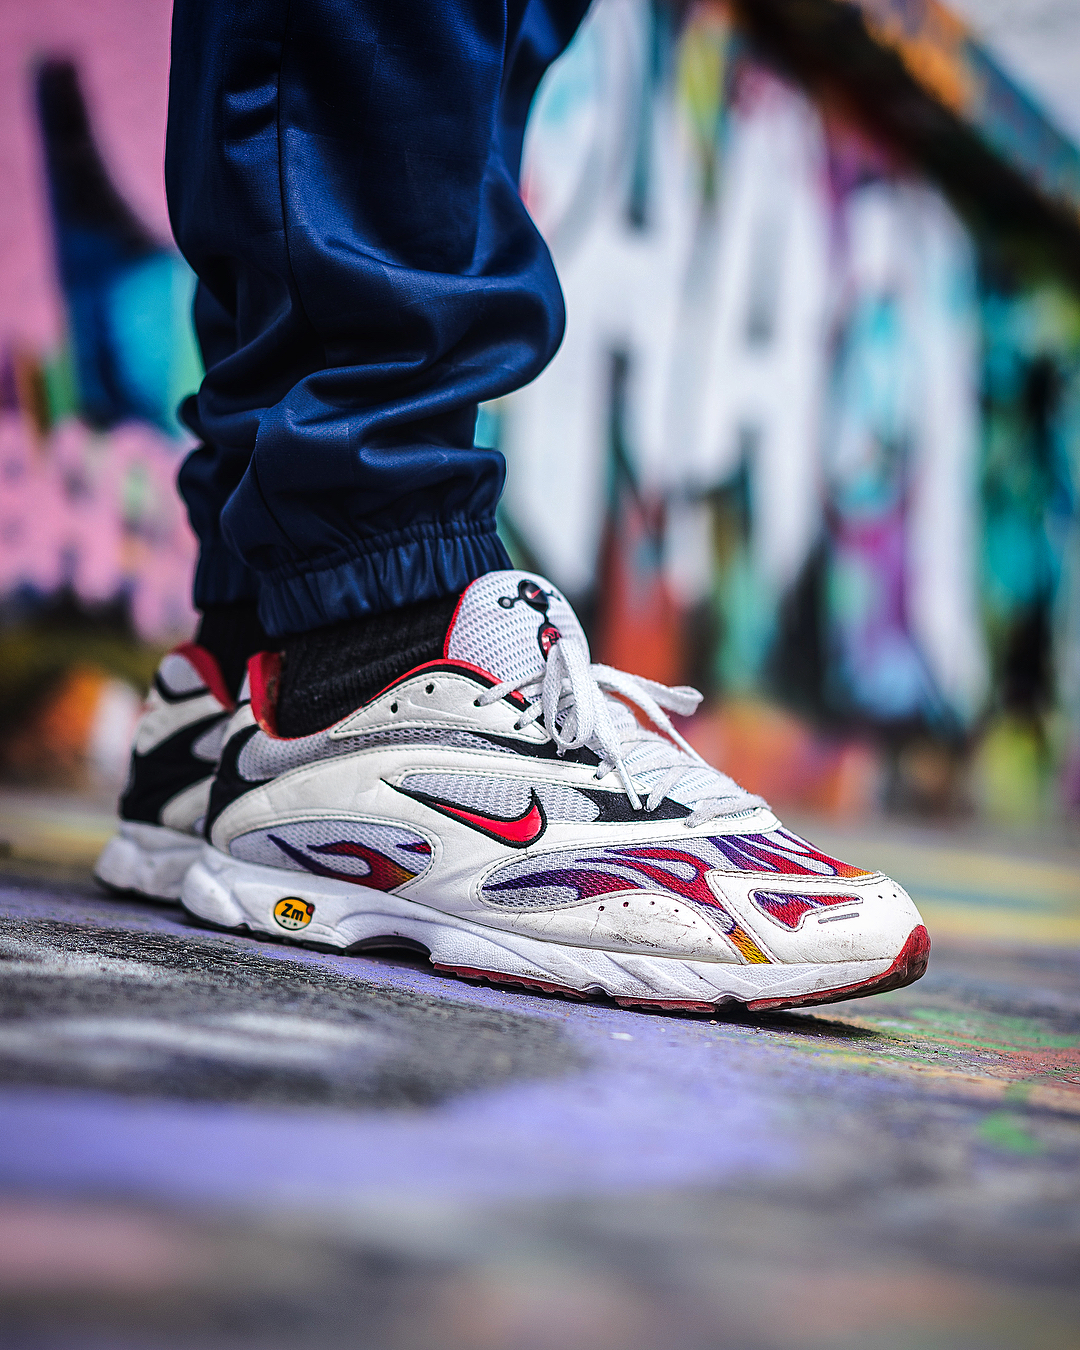 nike-air-zoom-streak-spectrum-plus-original-model